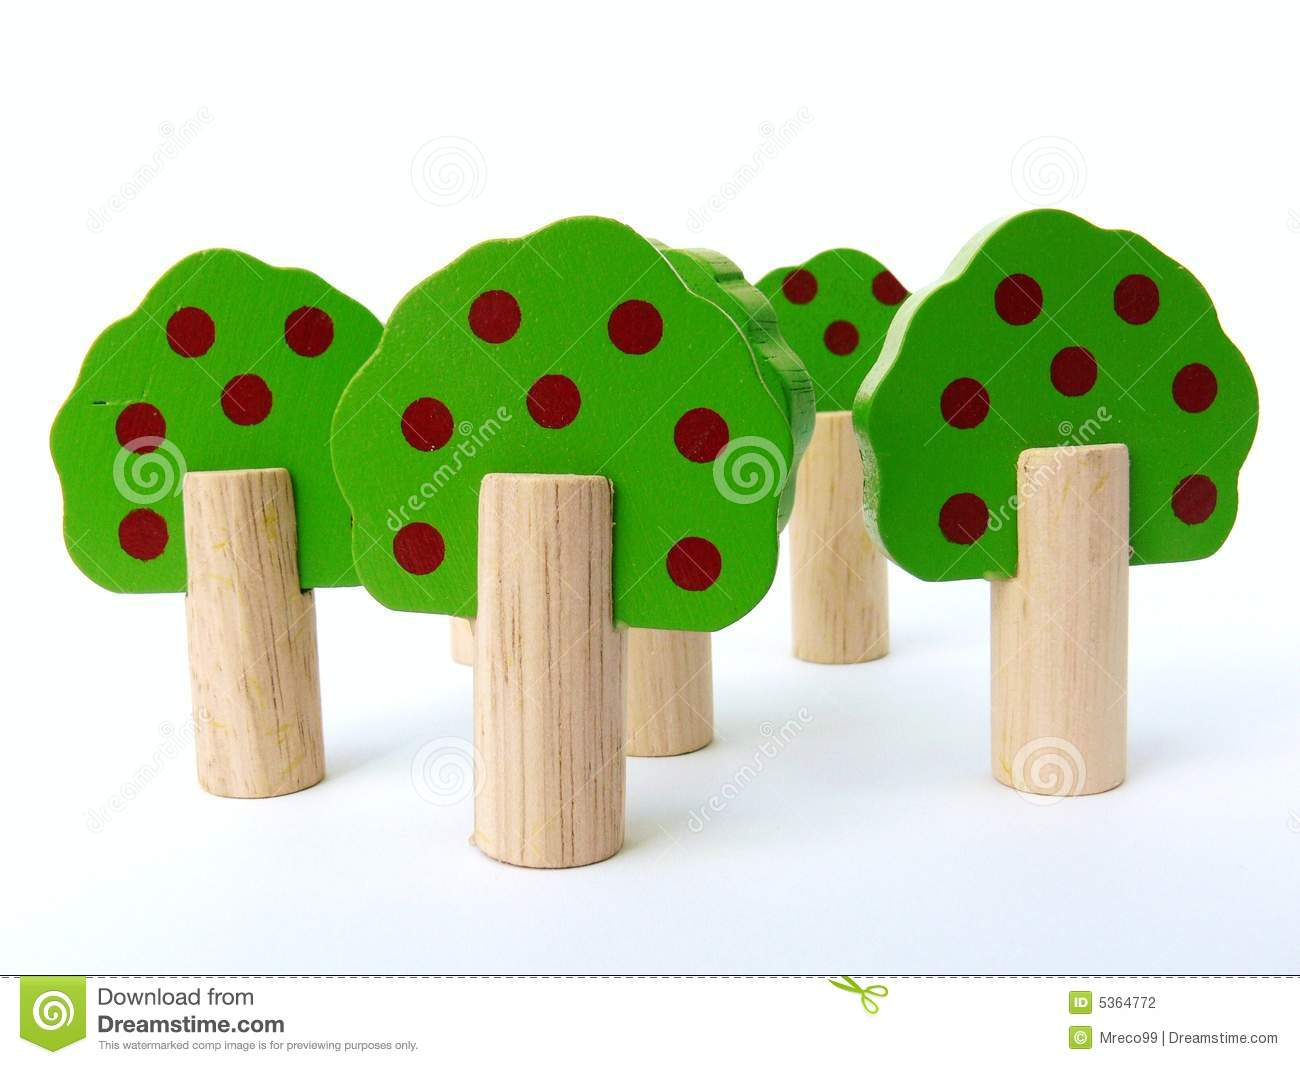 Wooden toy trees stock photography image 5364772 for Arbre maison jouet